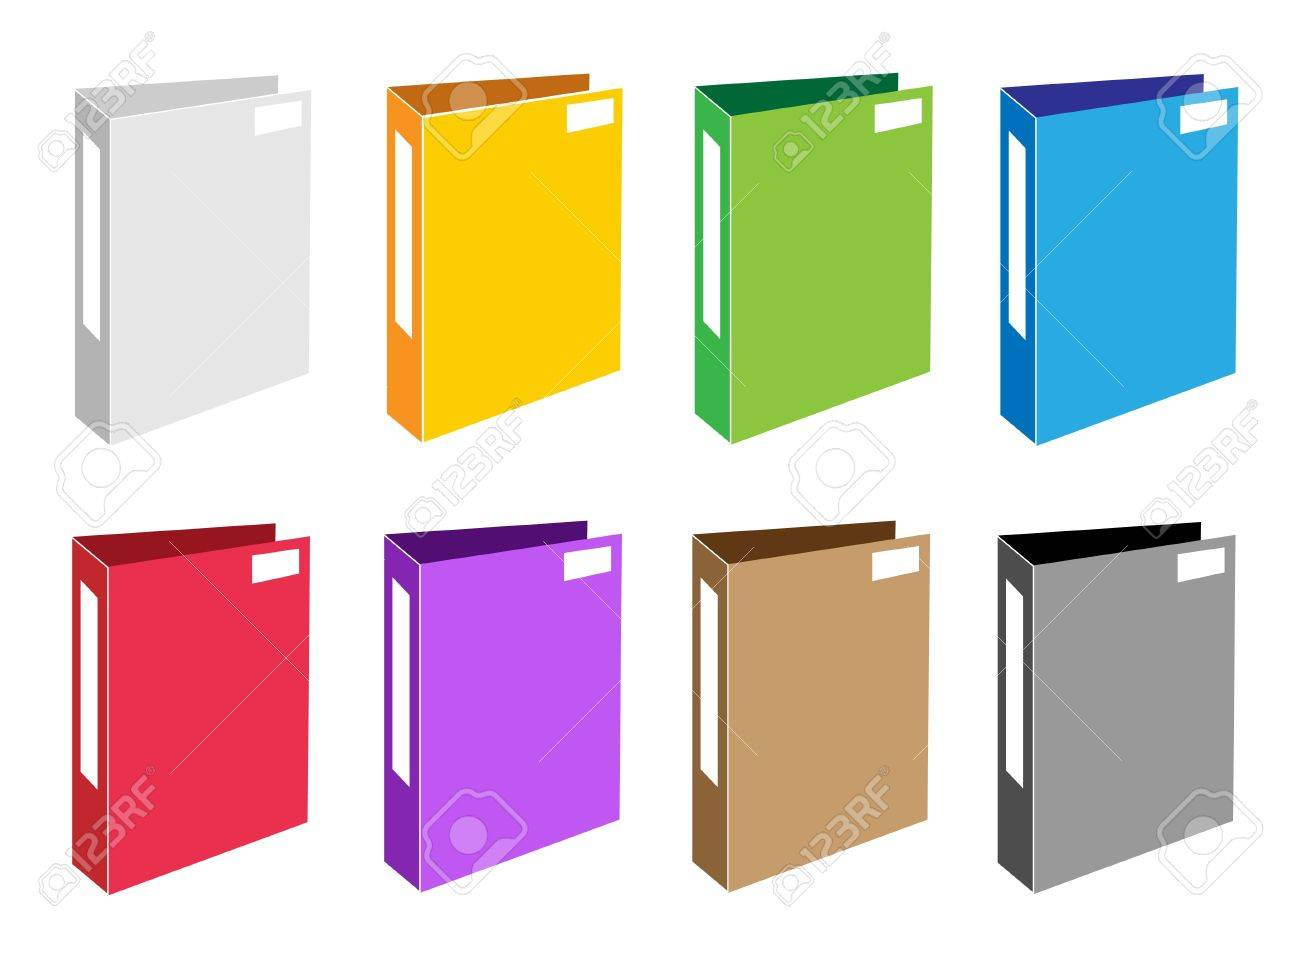 Illustration Collection of Colorsful File Folder Icons or Office Foloder Icons for Backups and Storing of Data Stock Vector - 17639421